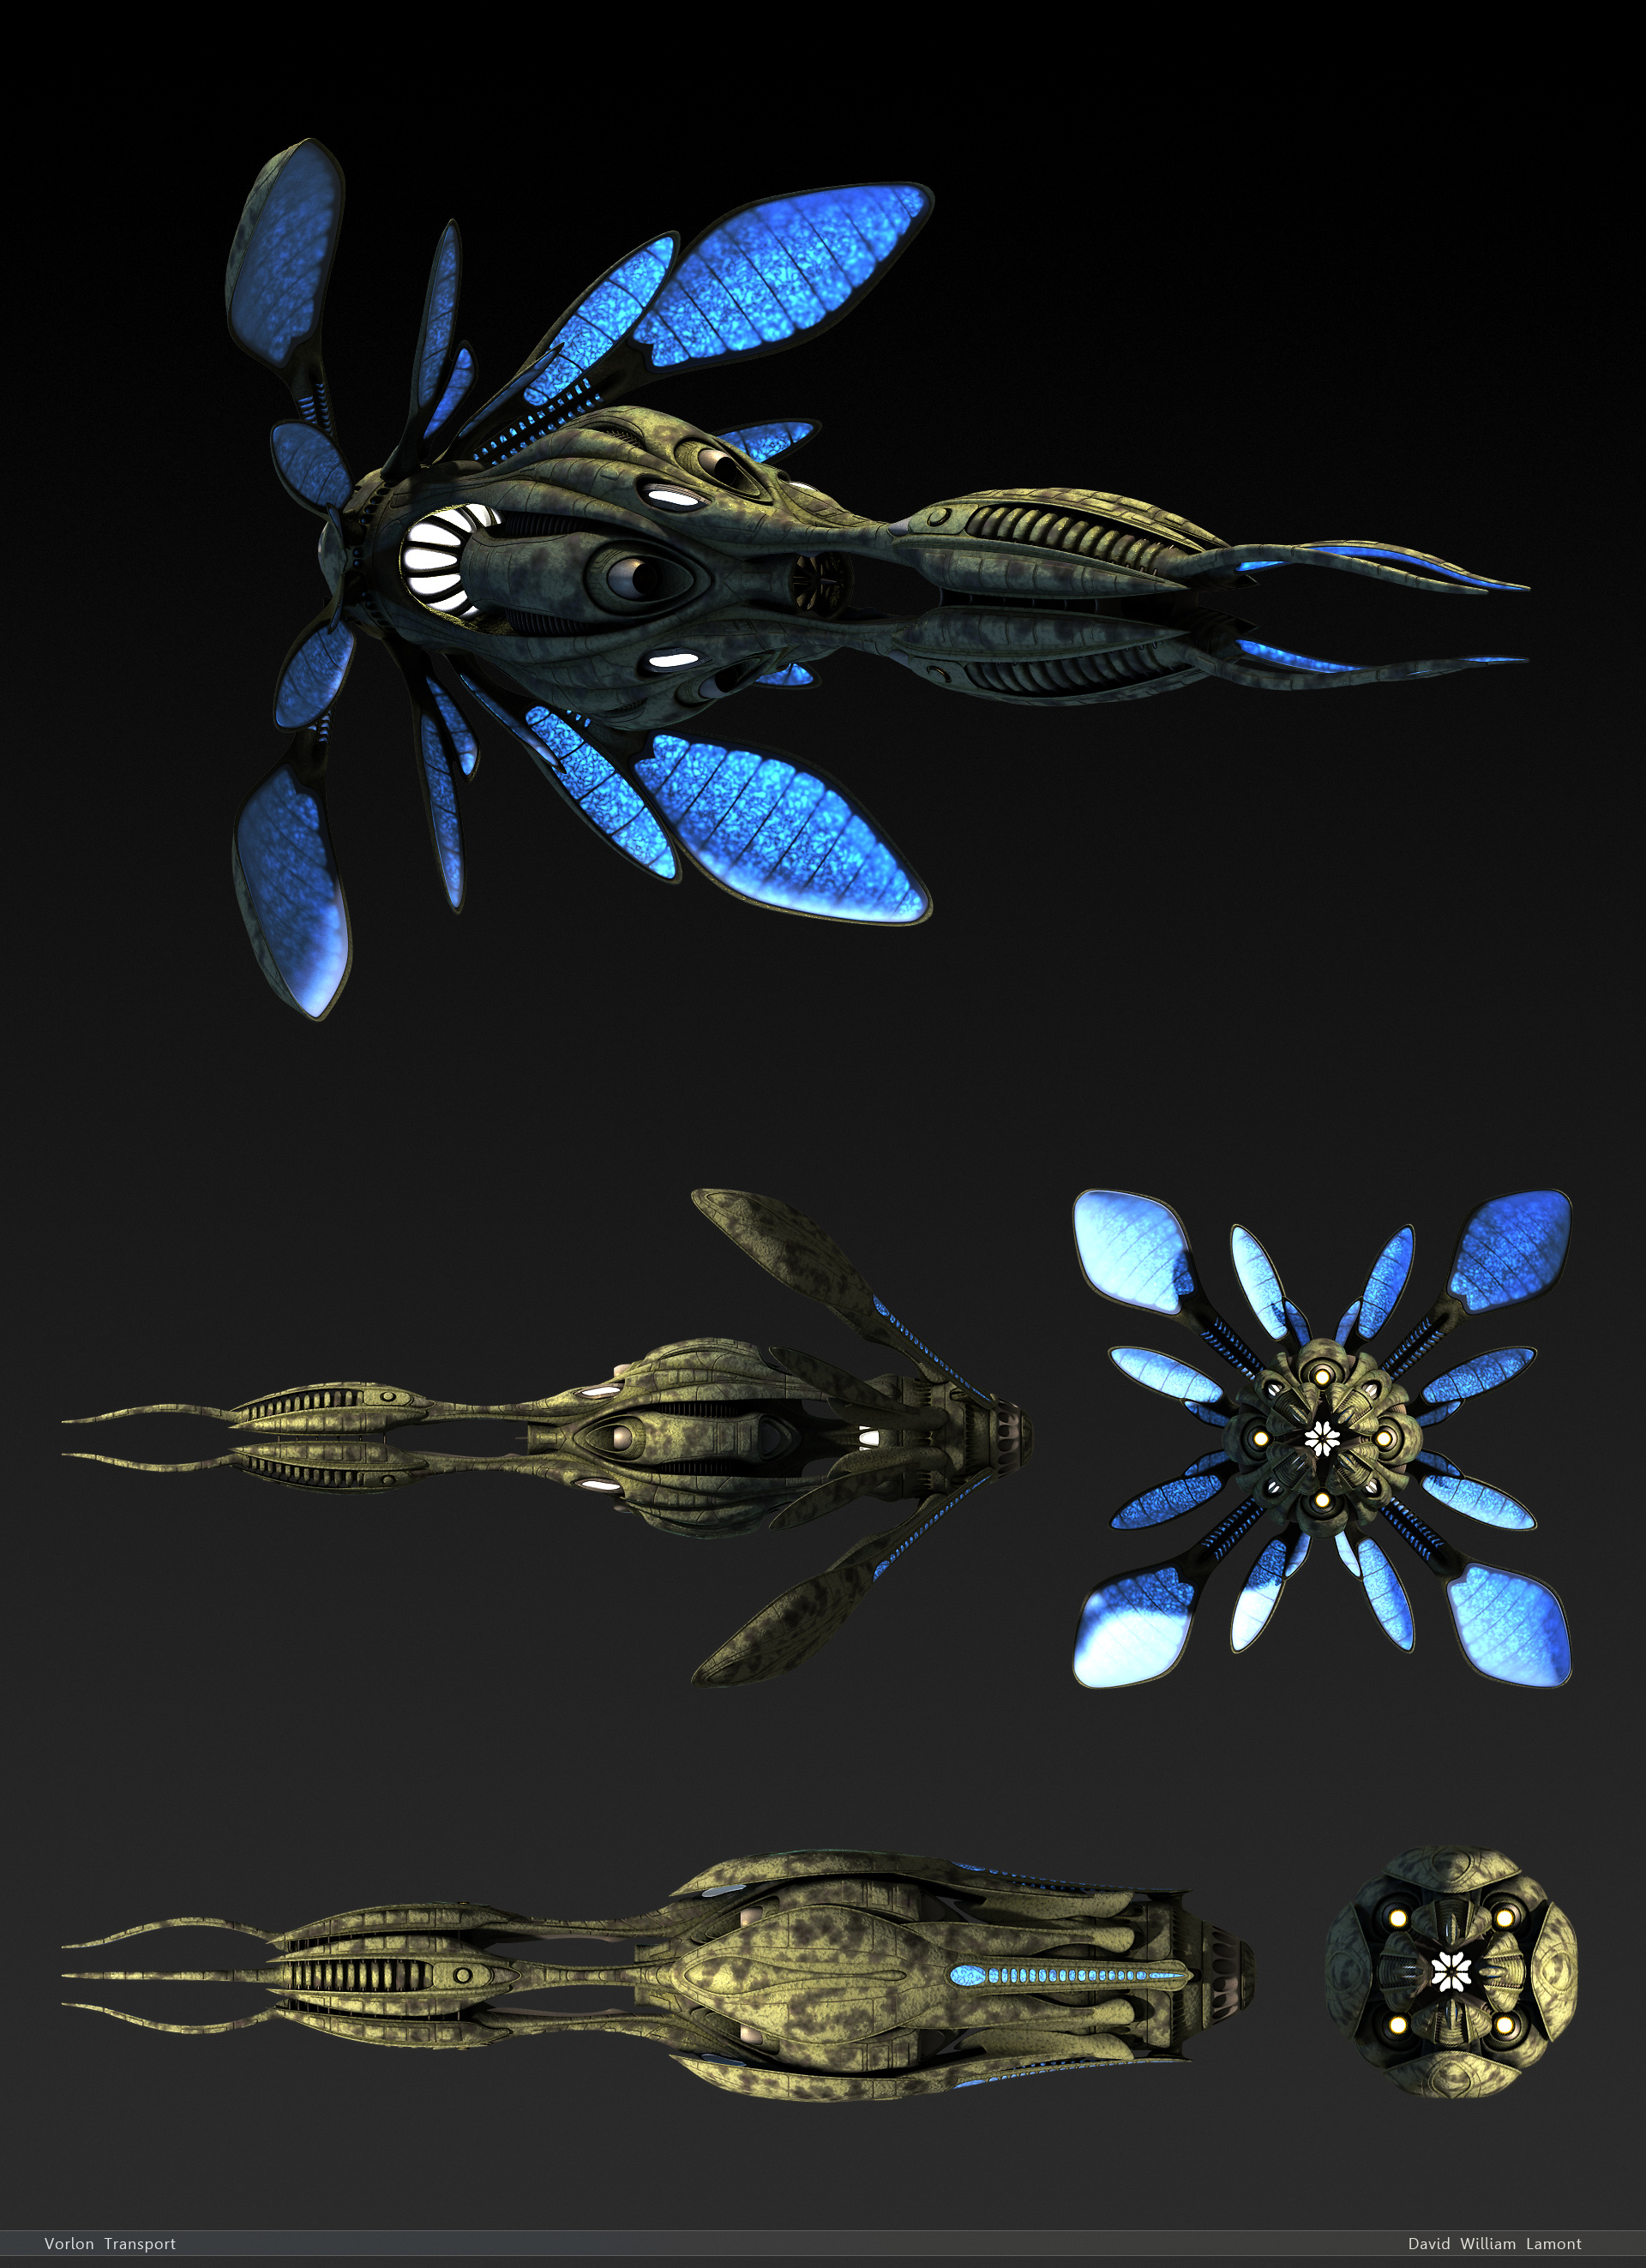 Presentation - Vorlon Transport by dlamont